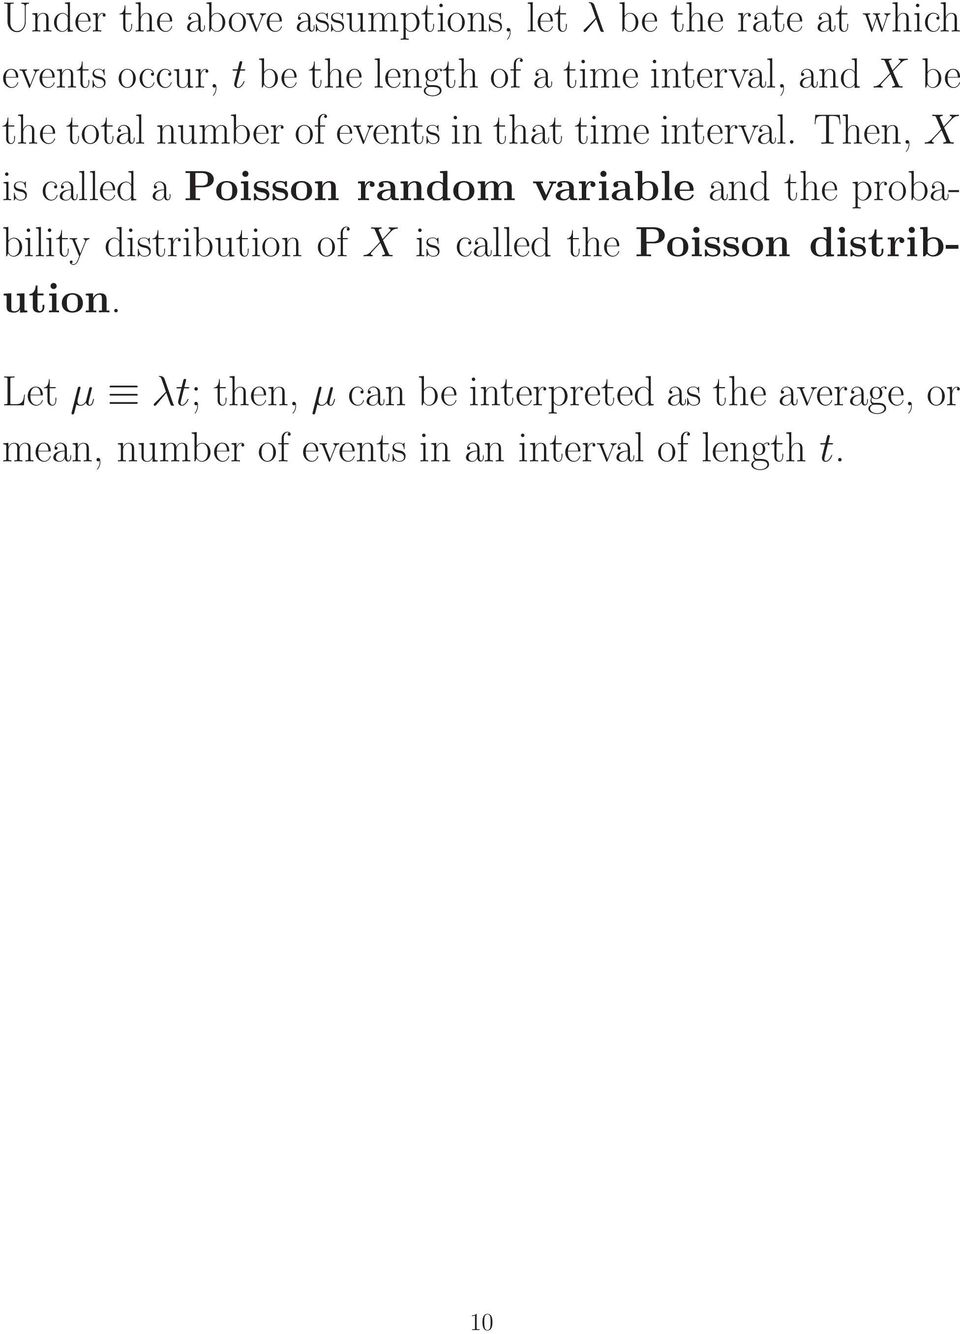 Then, X is called a Poisson random variable and the probability distribution of X is called the